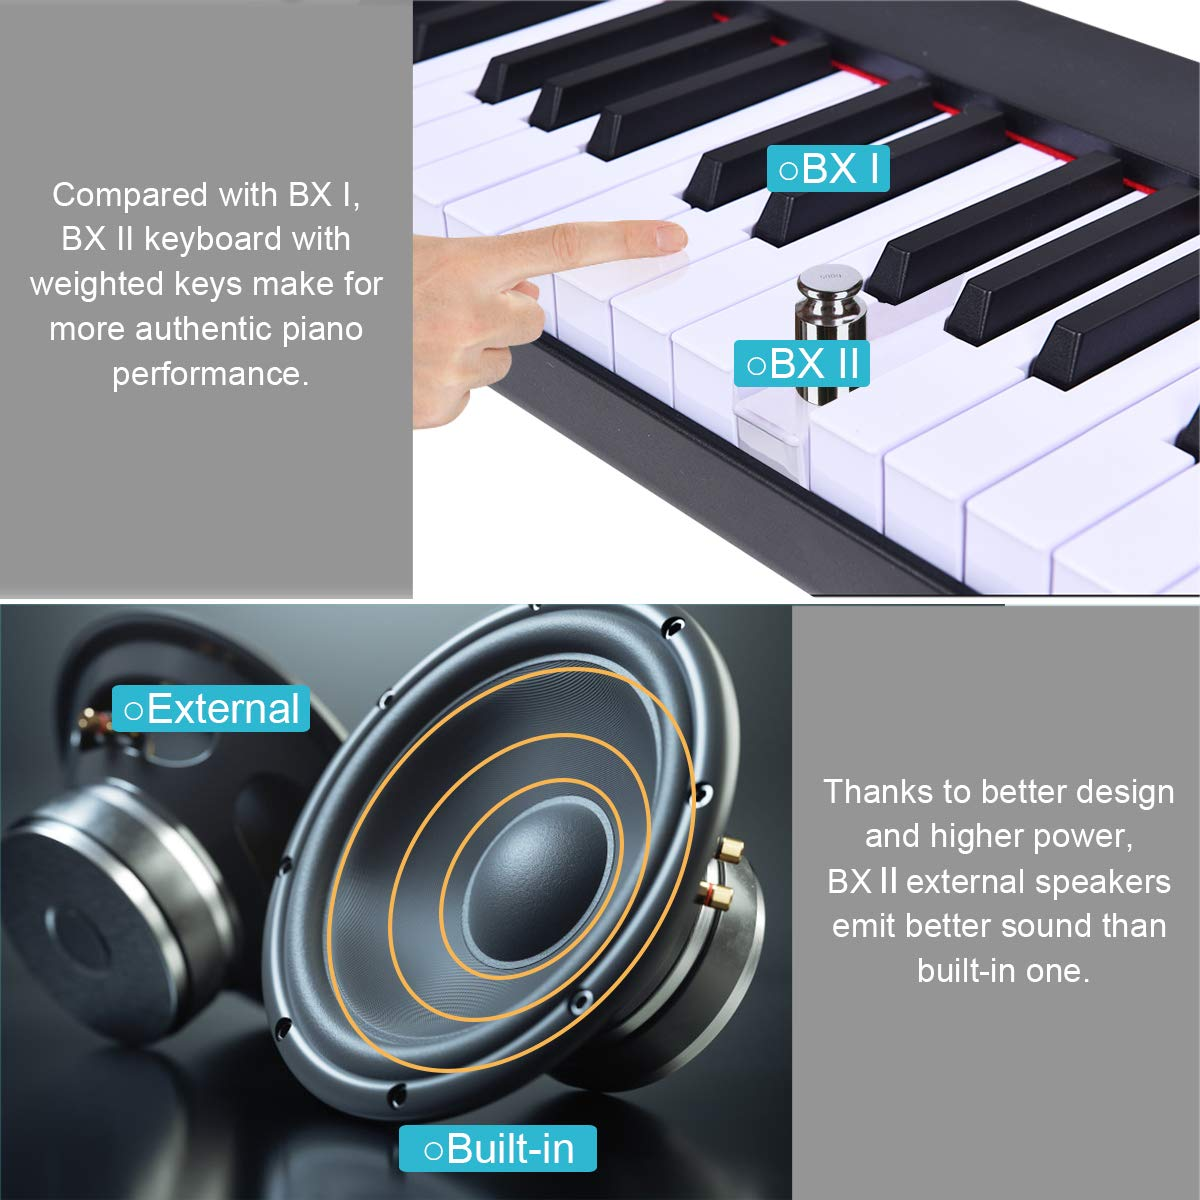 MIDI Keyboard Bluetooth Voice Function Power Supply and a Black Handbag White Costzon 88-Key Portable Digital Piano,Weighted Key Piano with External Speaker Sustain Pedal